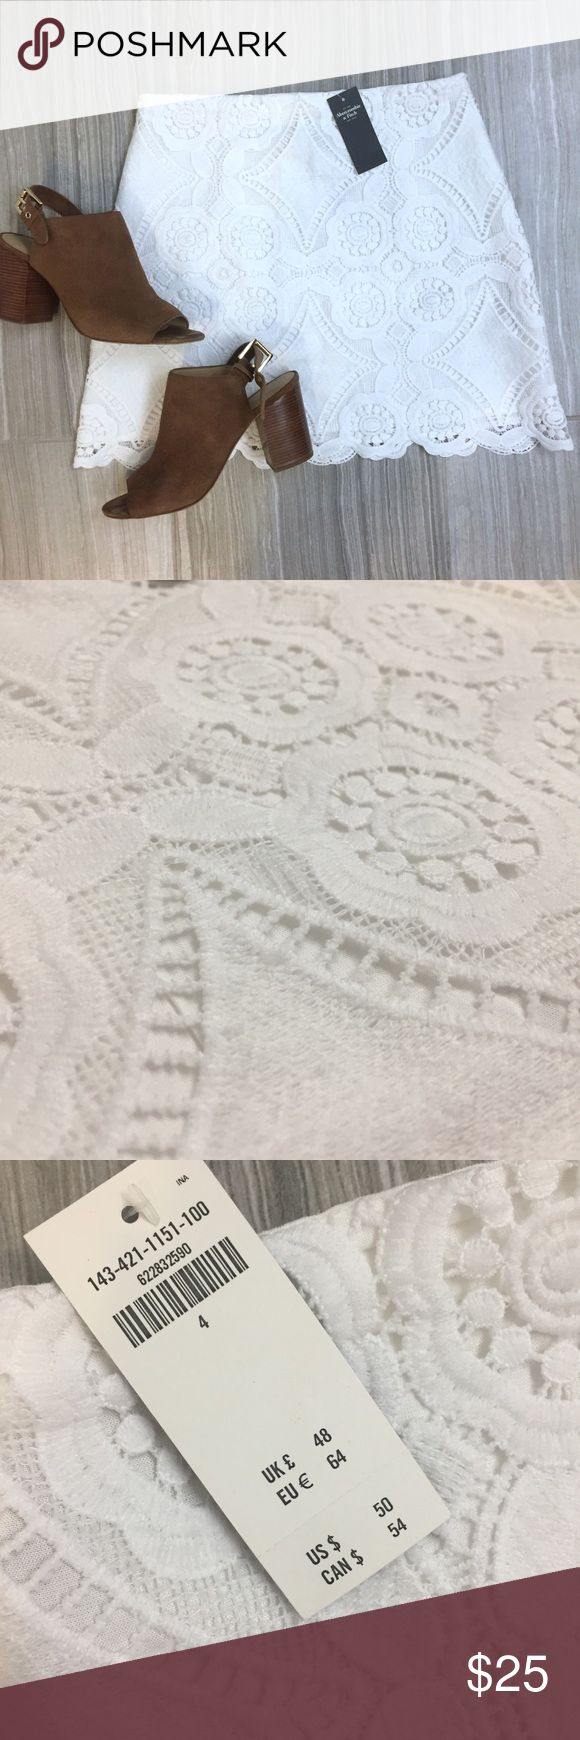 Abercrombie and Fitch crochet skirt Abercrombie and Fitch crochet overlay skirt with white underlay in a size 4-NWT.                                                             Make me offers🎉 Abercrombie & Fitch Skirts